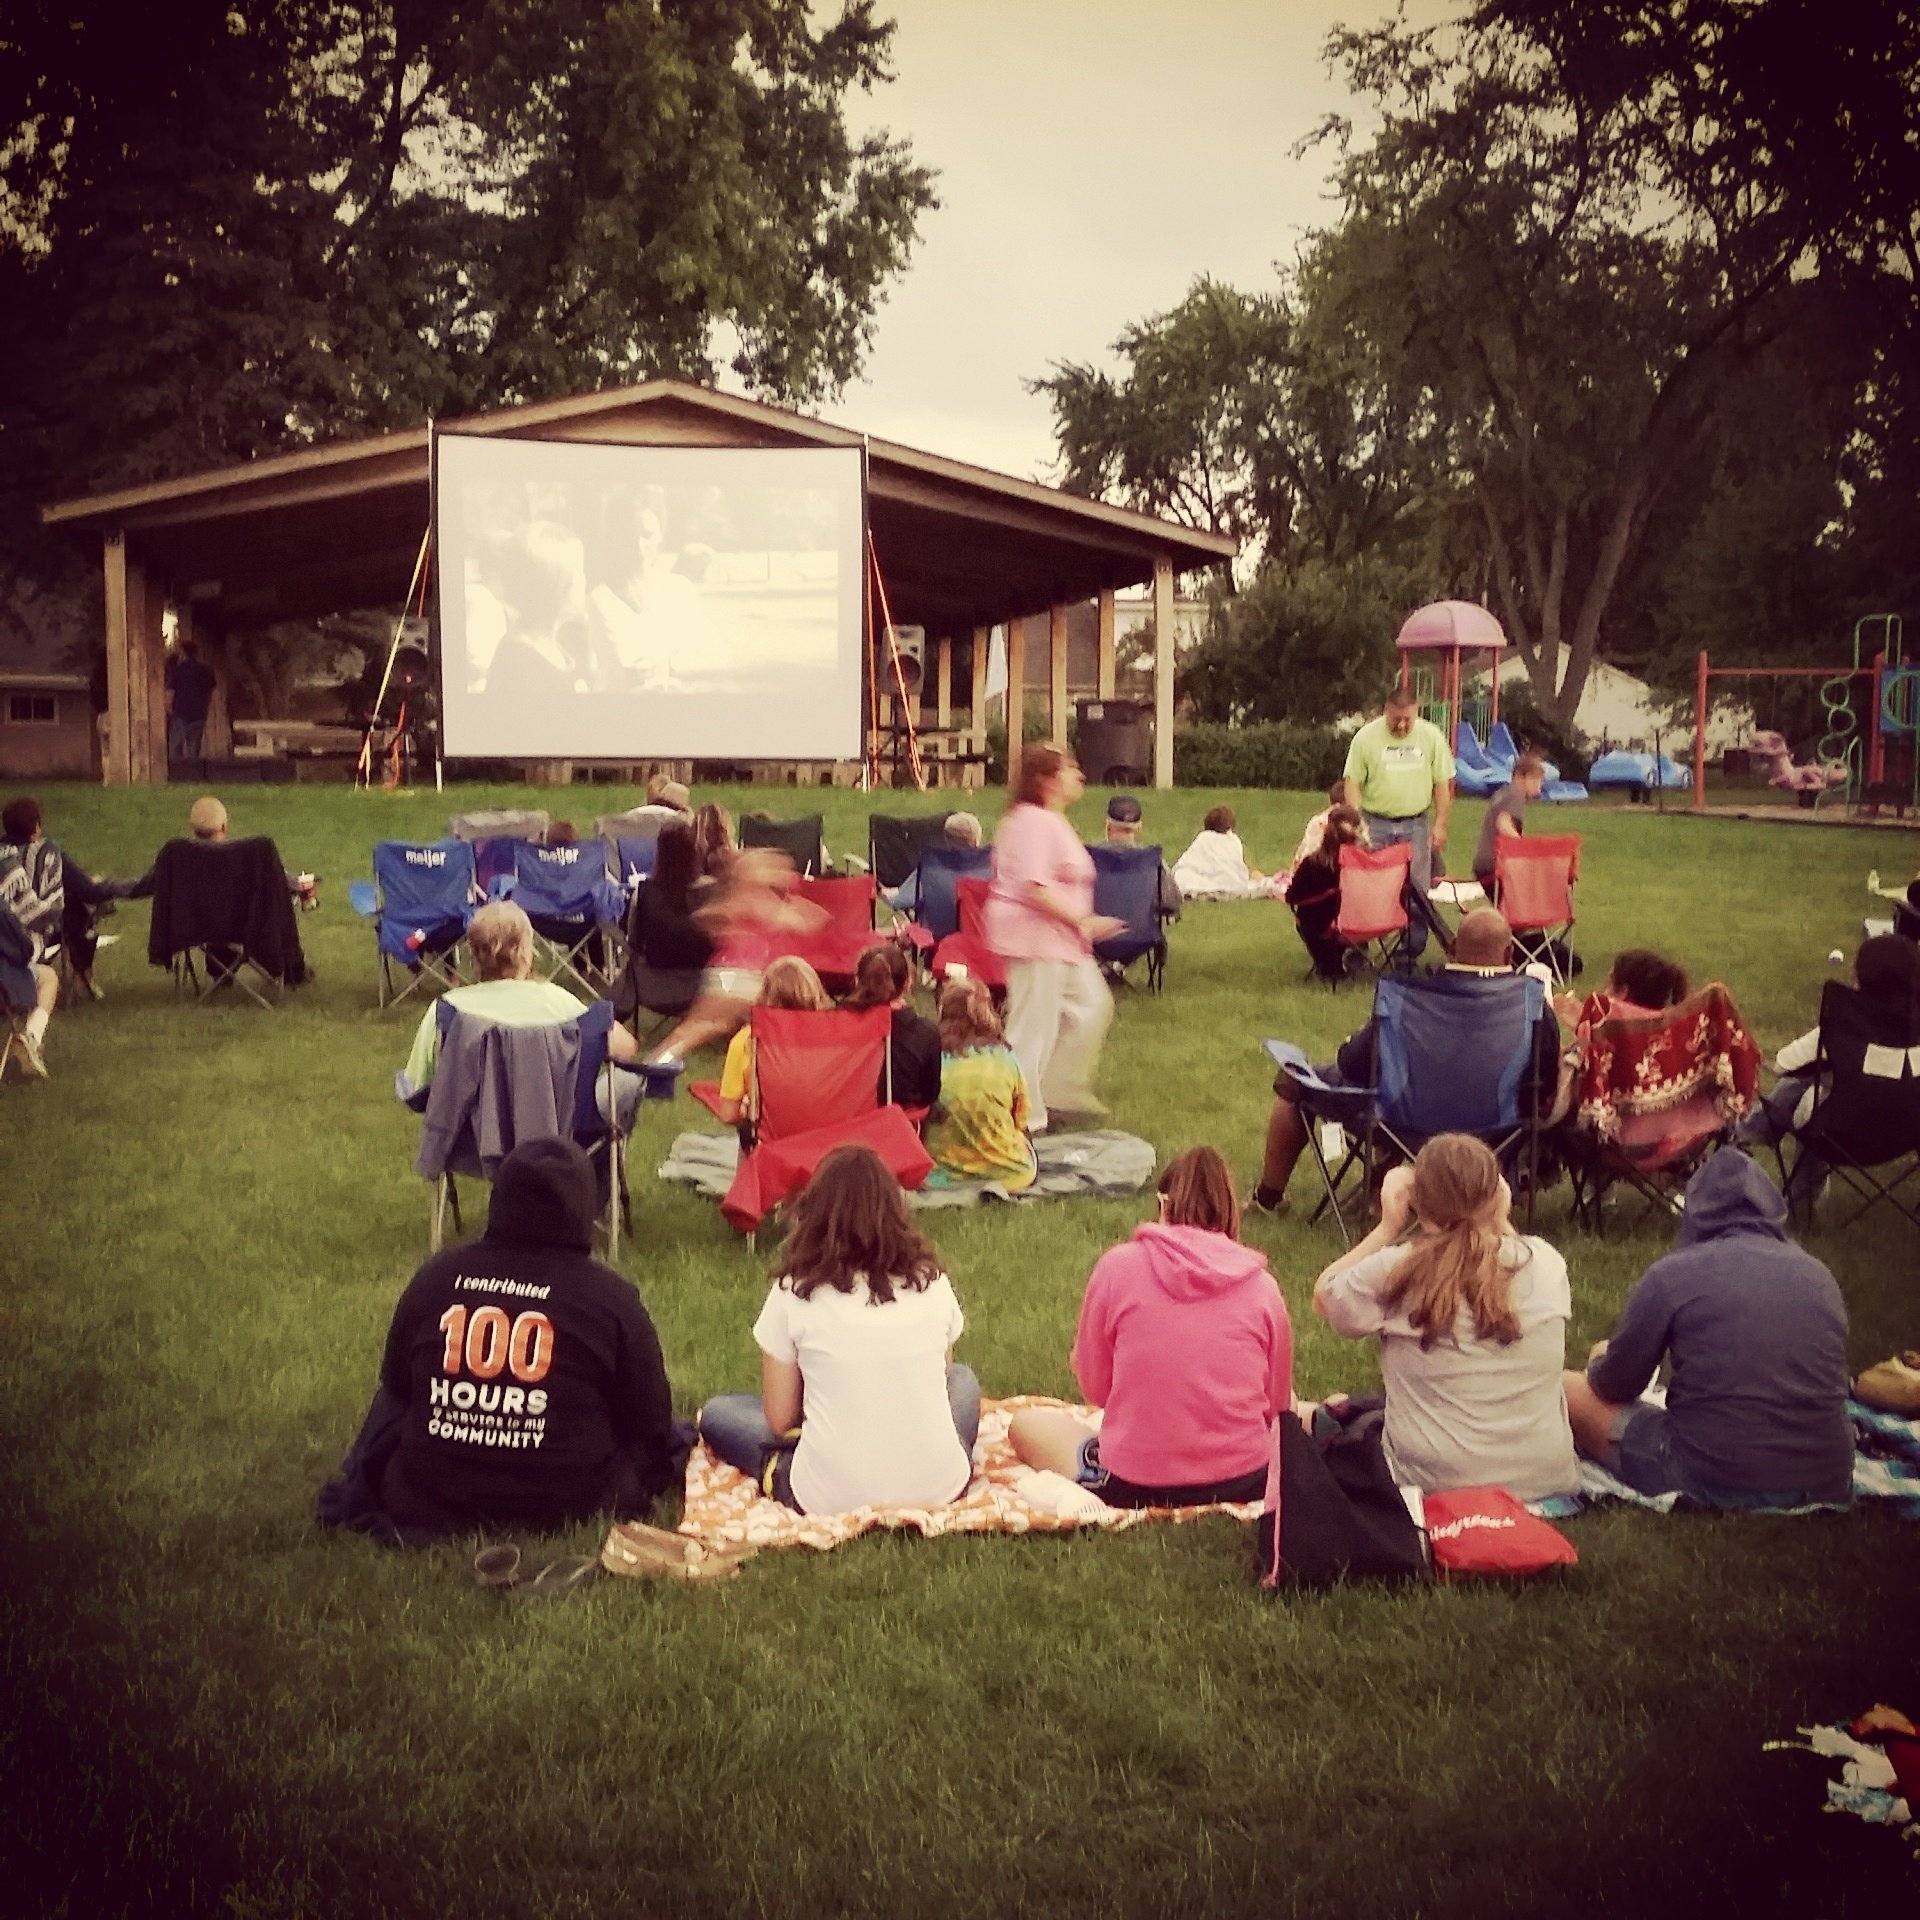 Thanks to @TheMichigan for the setup at the Spring Arbor Branch's Movies in the Park! #myjdl #getOTL https://t.co/n7T36WmoiD